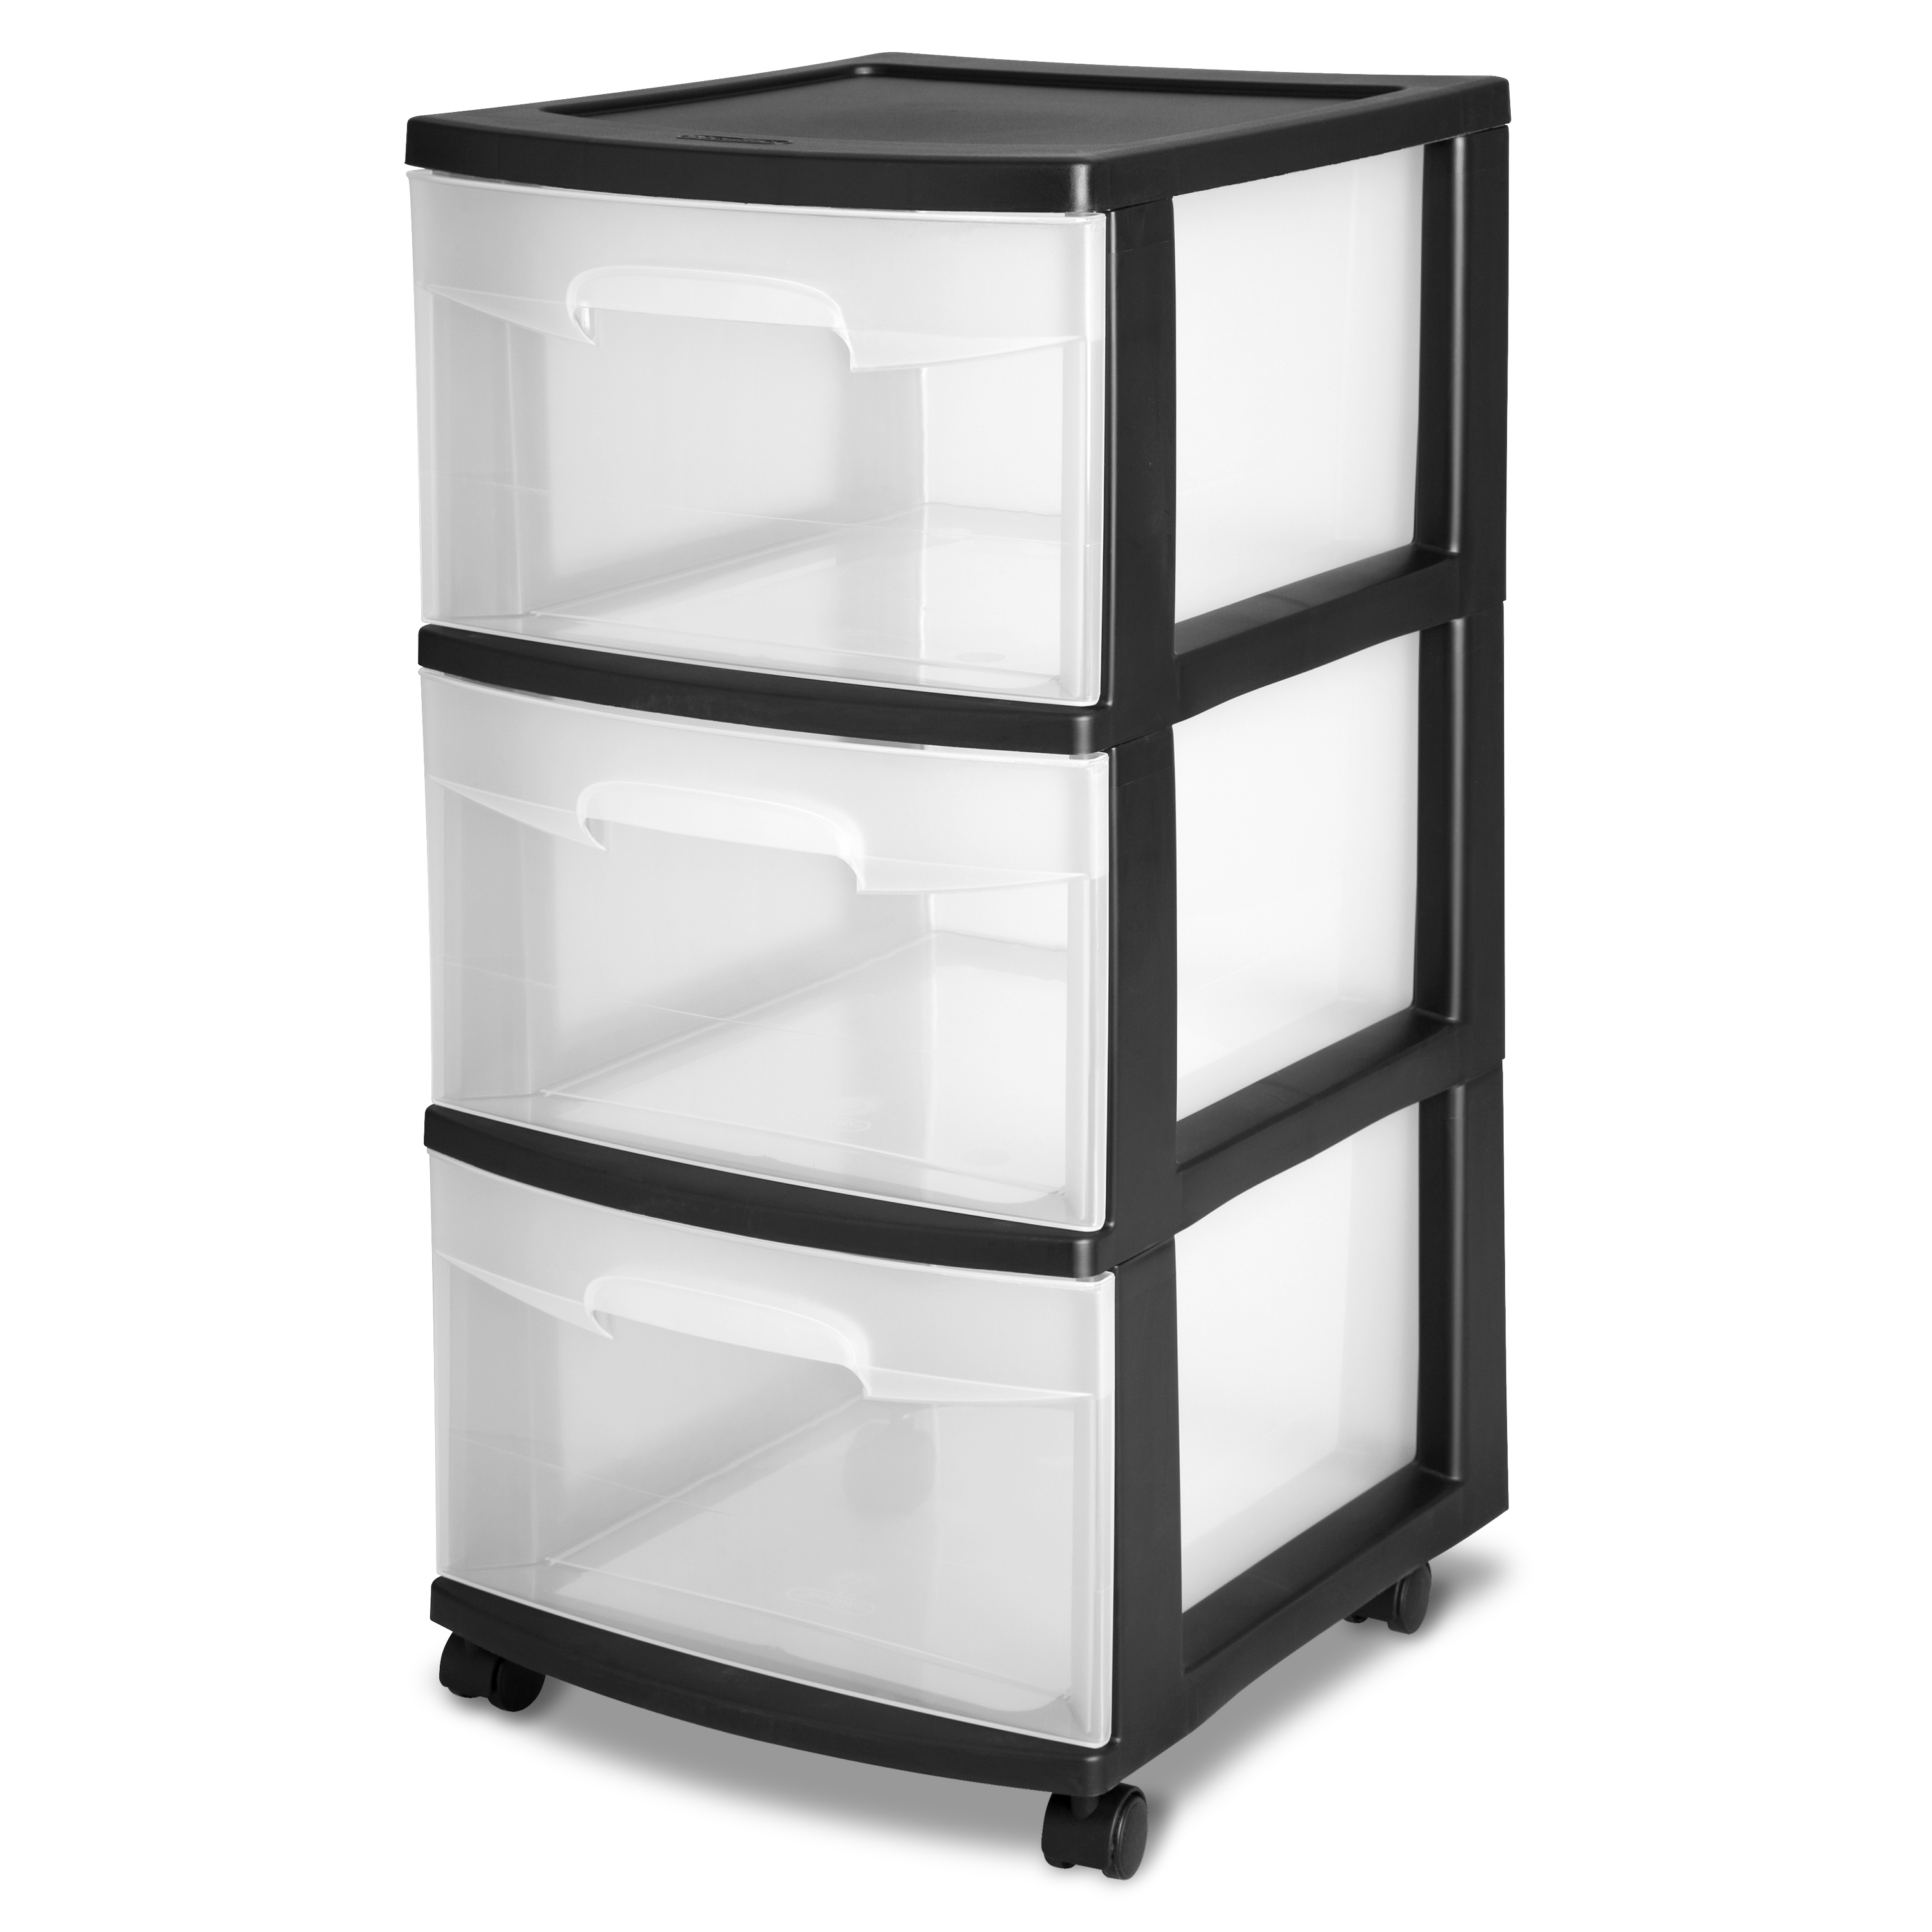 Sterilite 3 Drawer Cart, Black (Available in Case of 2 or Single Unit)